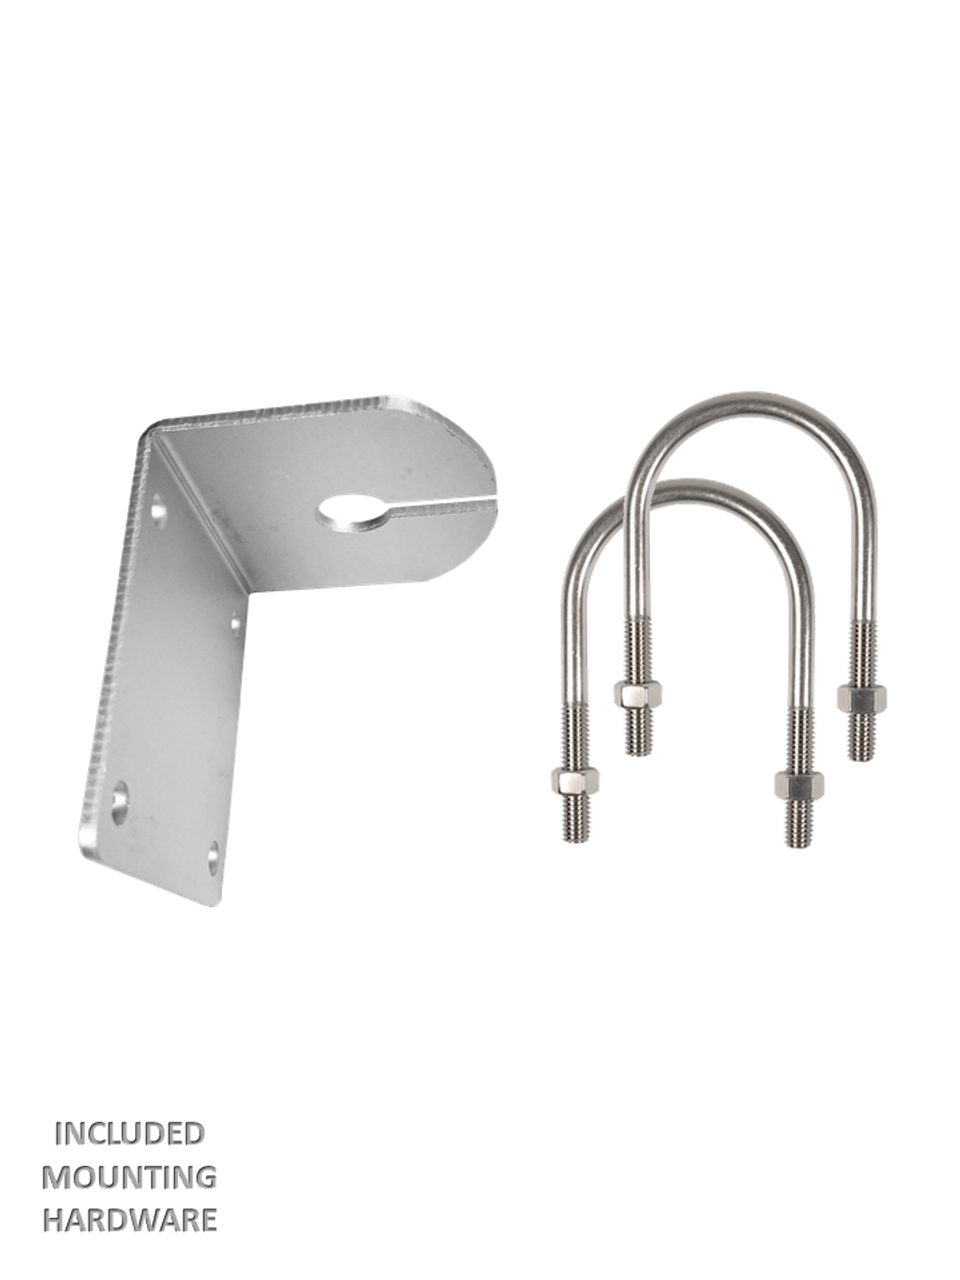 Stainless Steel L-Bracket Mount Hardware Included